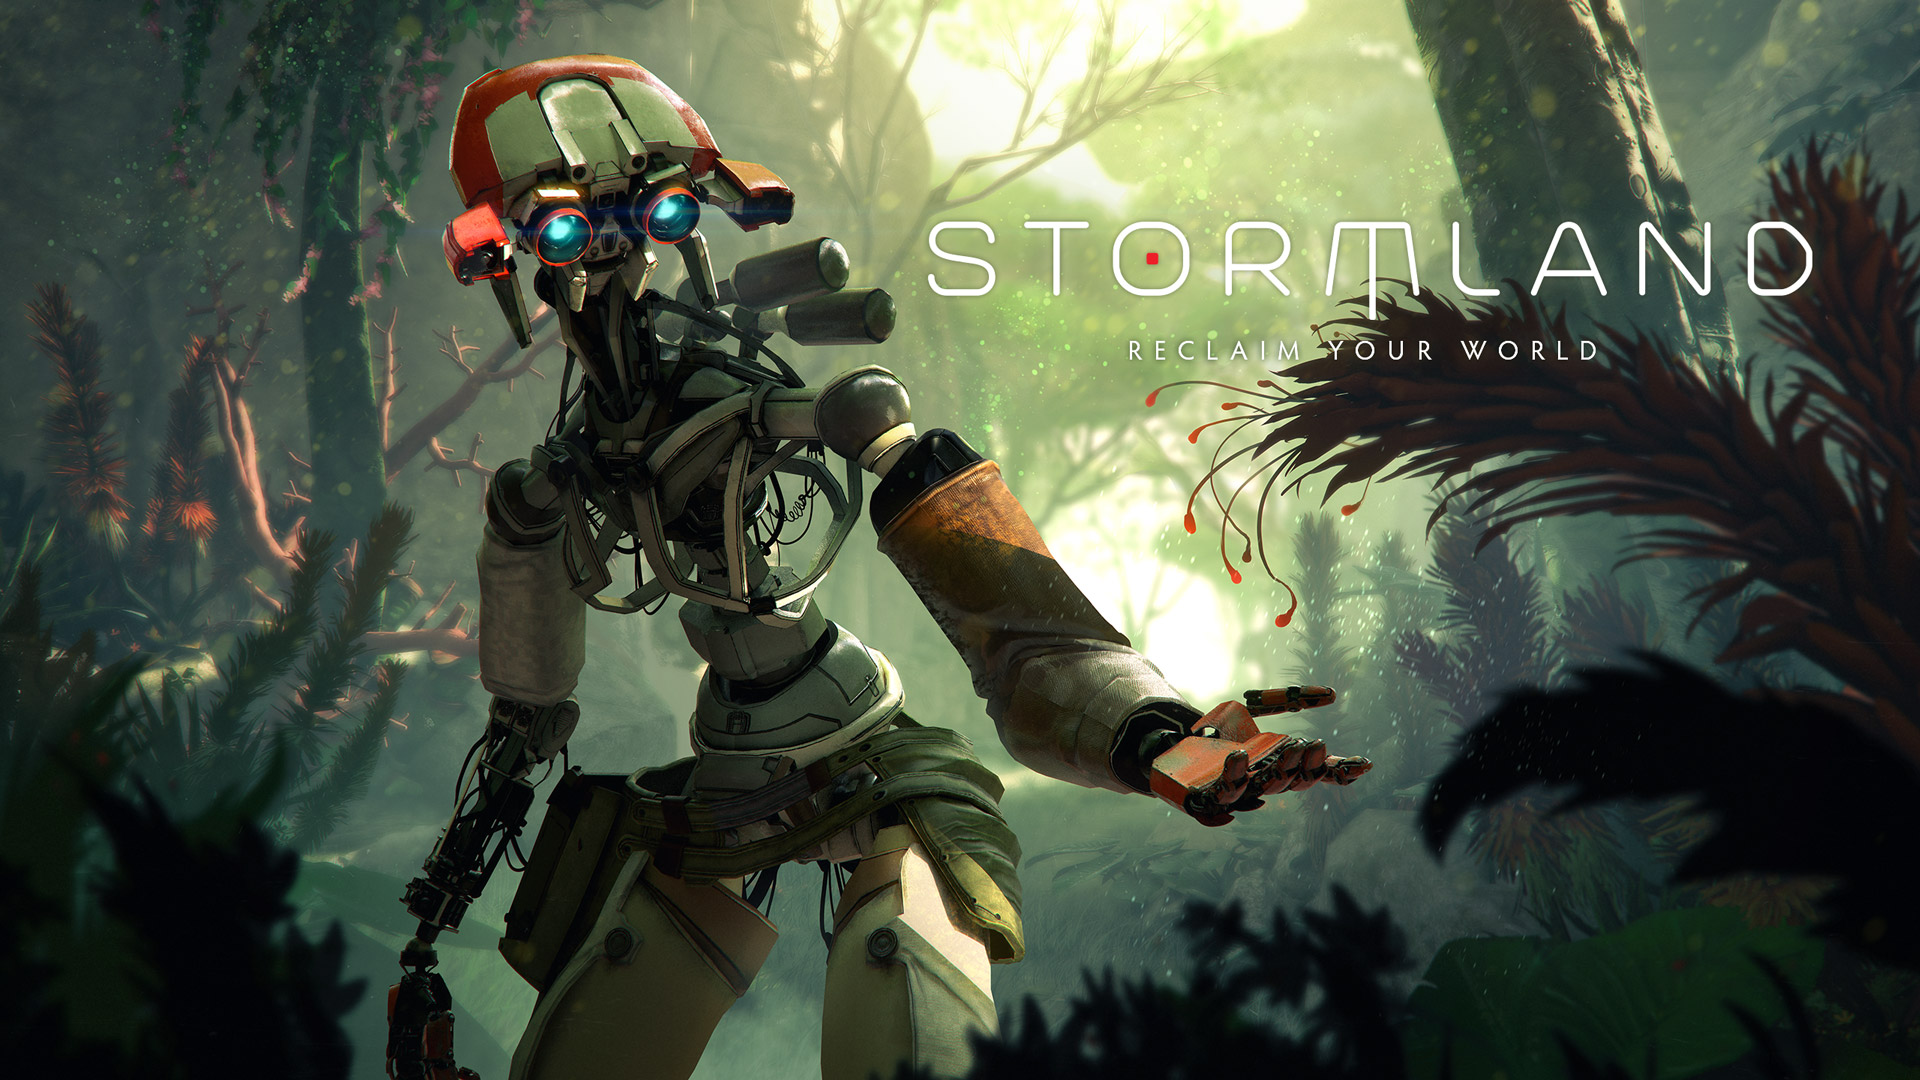 'Stormland' Review – The New Bar for VR Open-world Adventure